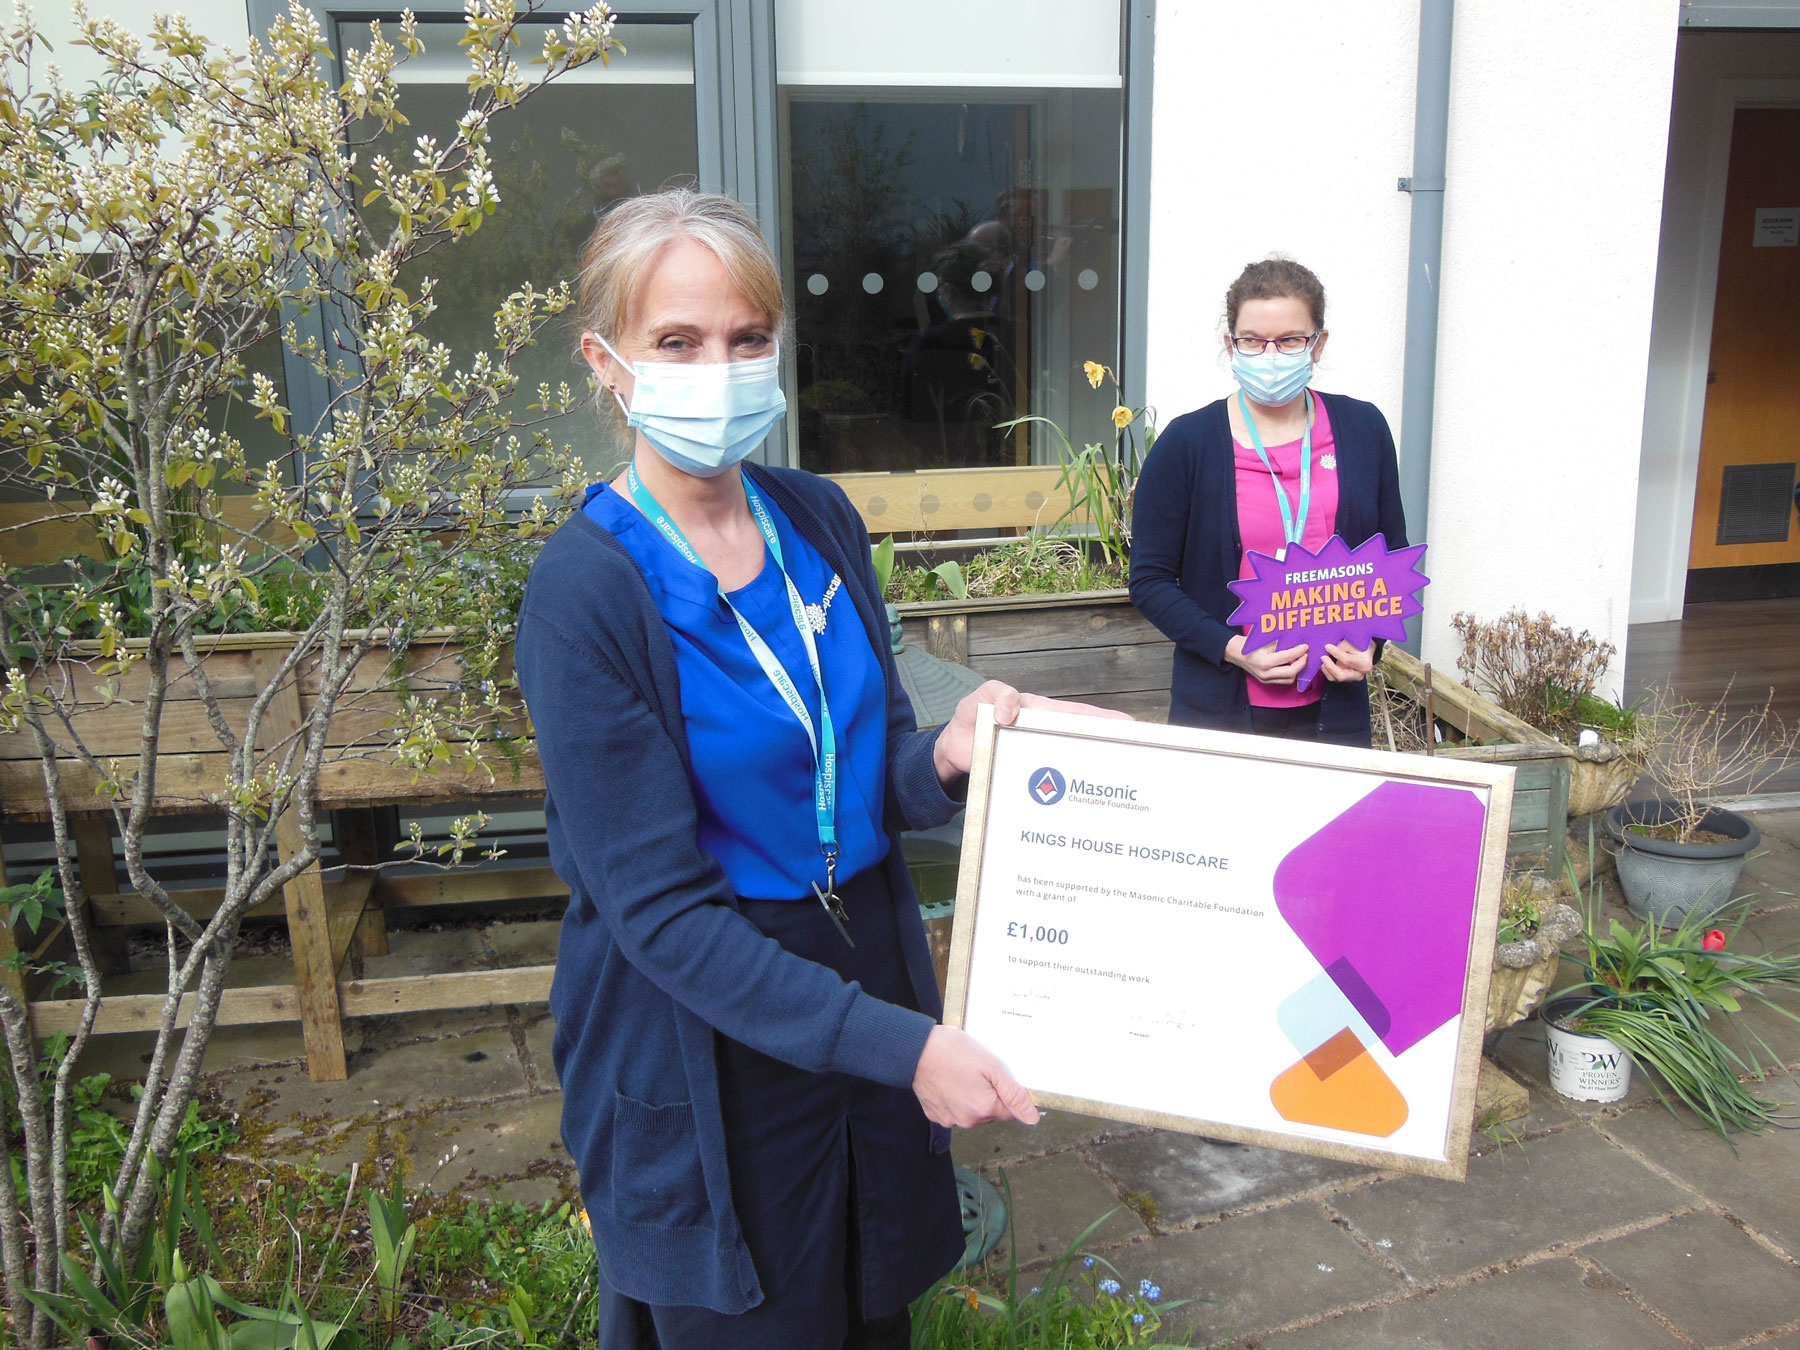 Hospiscare Heroes – From art auctions to Open Gardens